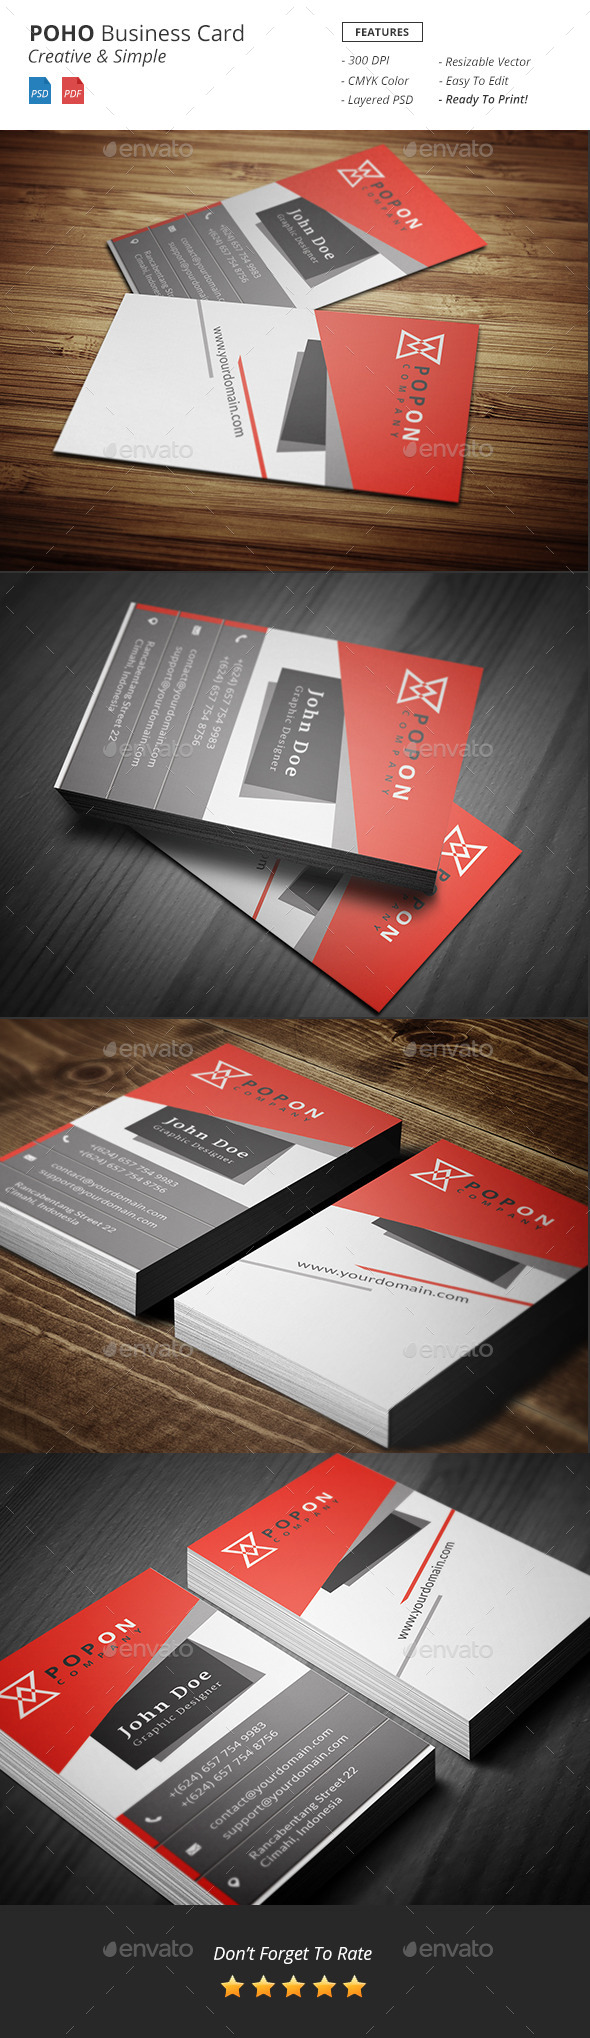 Poho - Bussiness Card Template - Corporate Business Cards